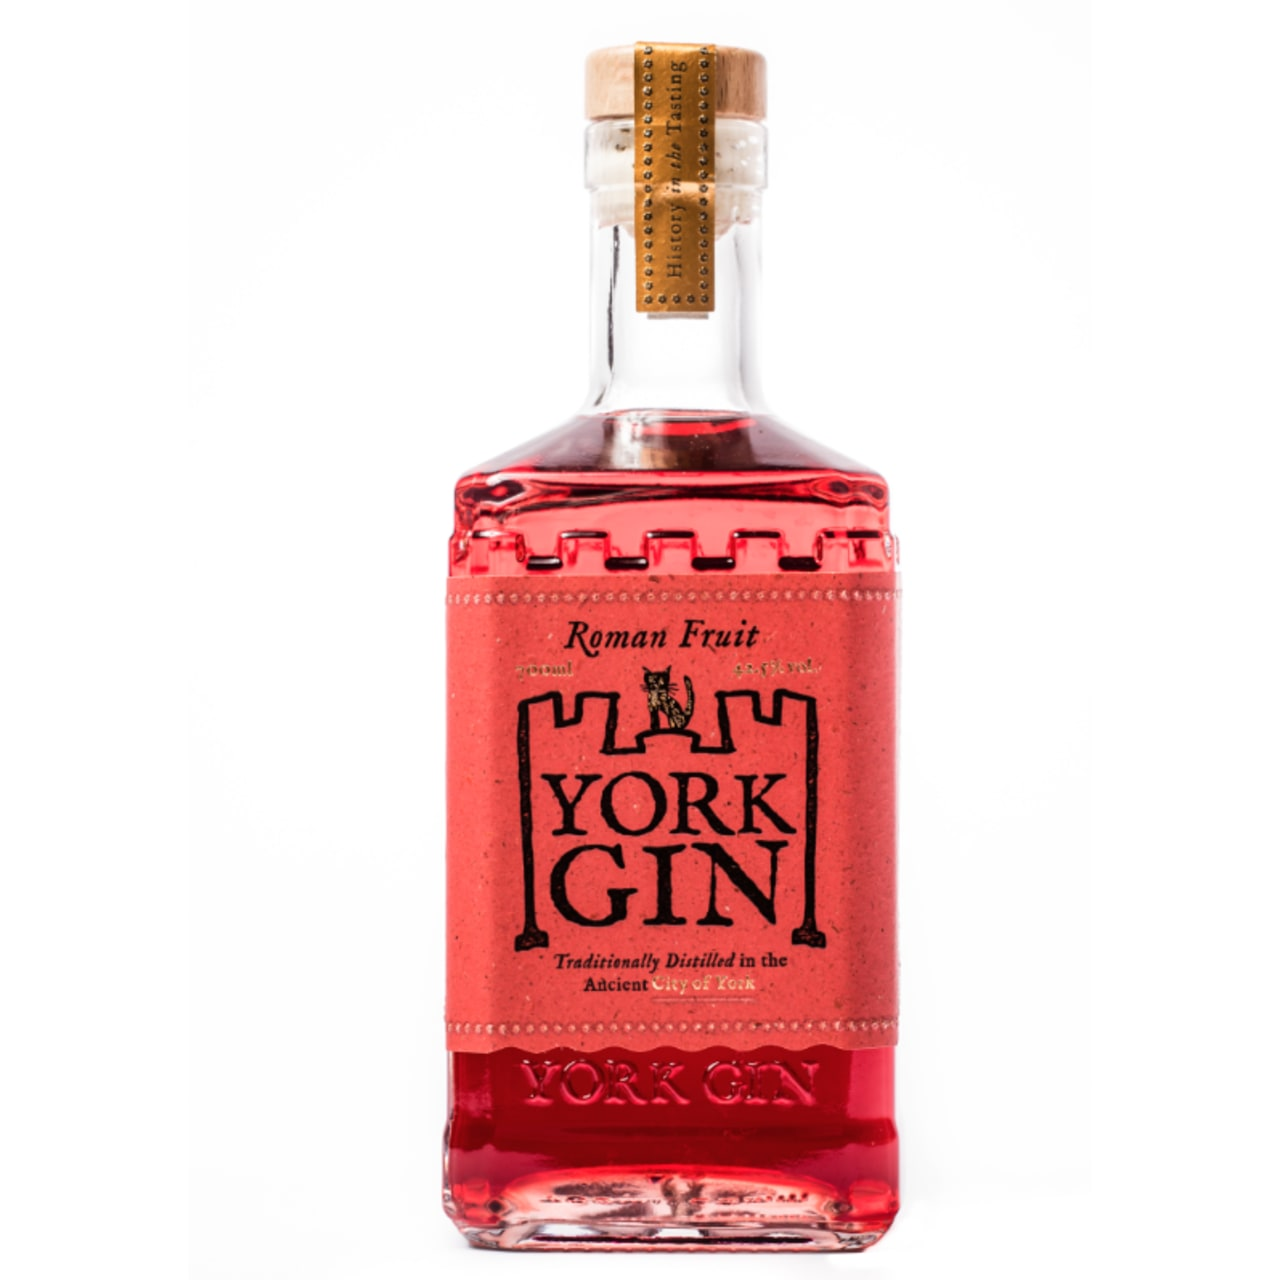 Product Image - York Gin Roman Fruit